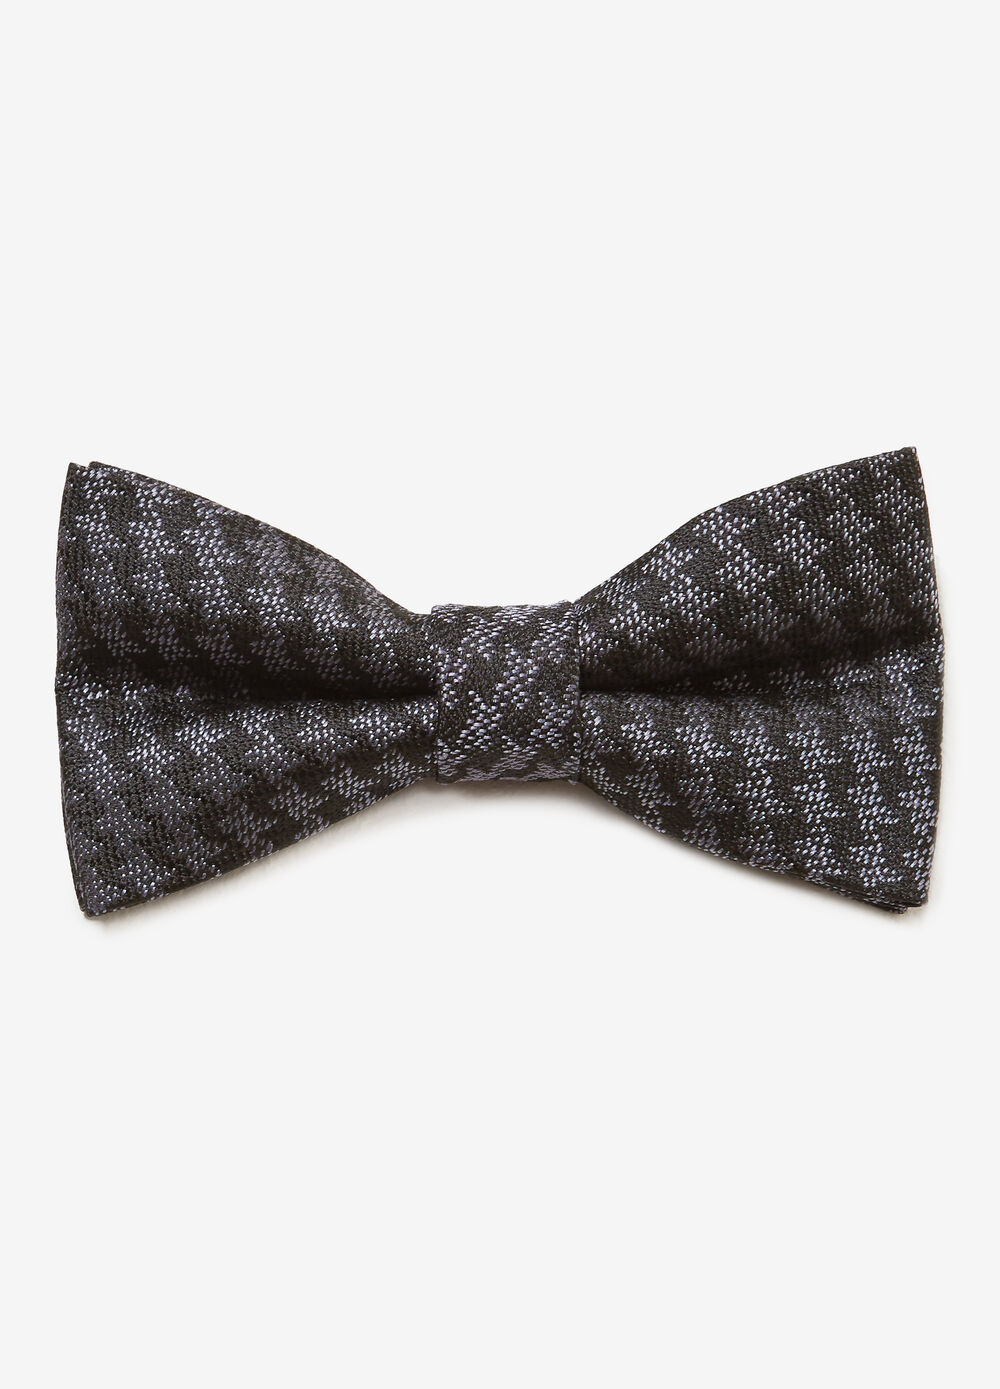 Bow tie with hounds' tooth pattern